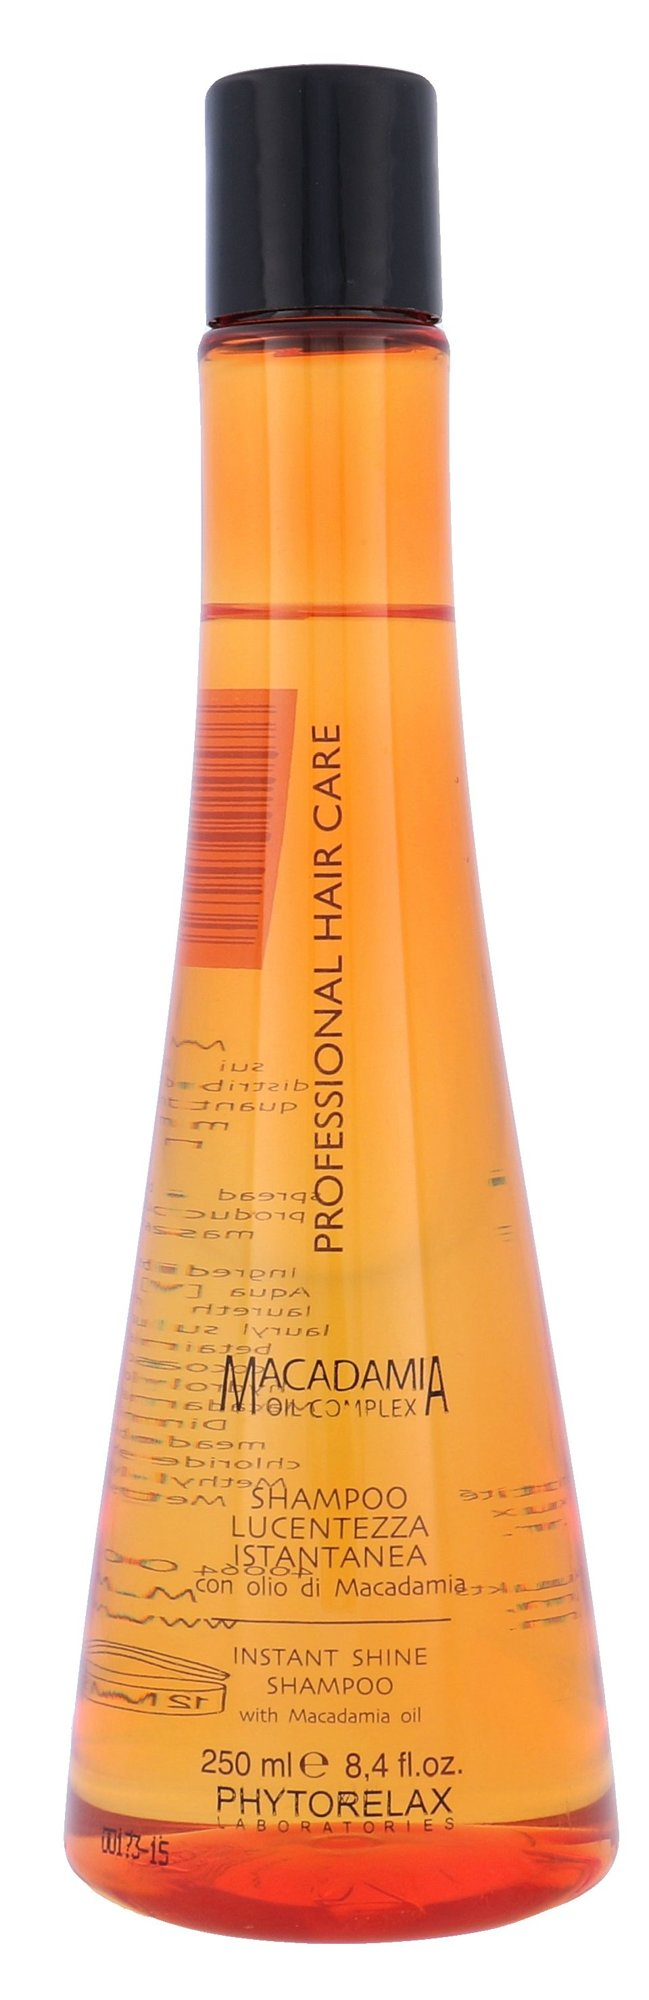 Phytorelax Laboratories Macadamia Professional Hair Care Cosmetic 250ml